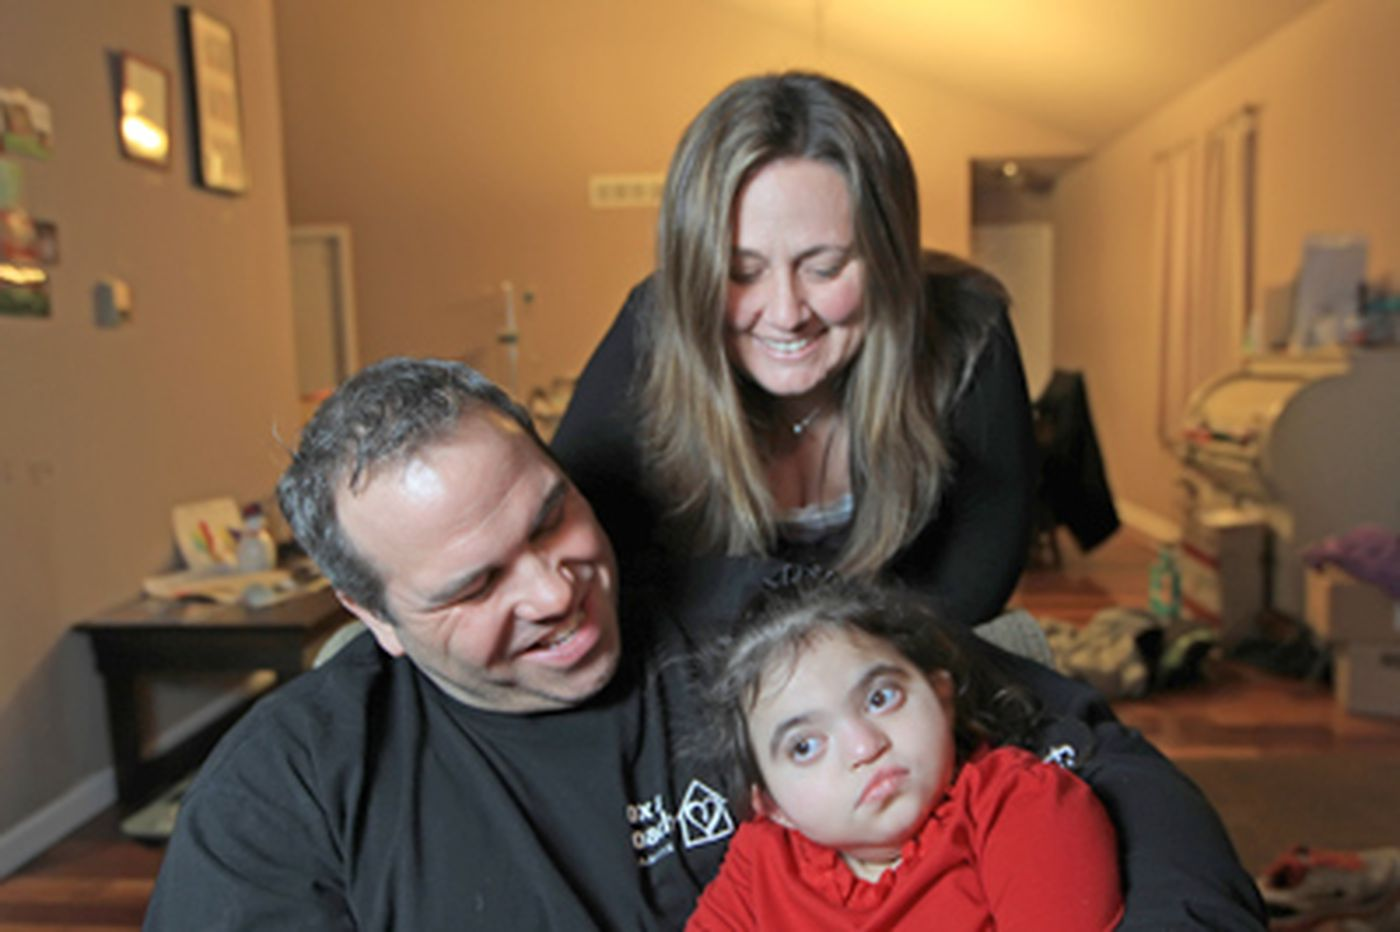 Support pours in for Camden County girl, 3, denied kidney transplant